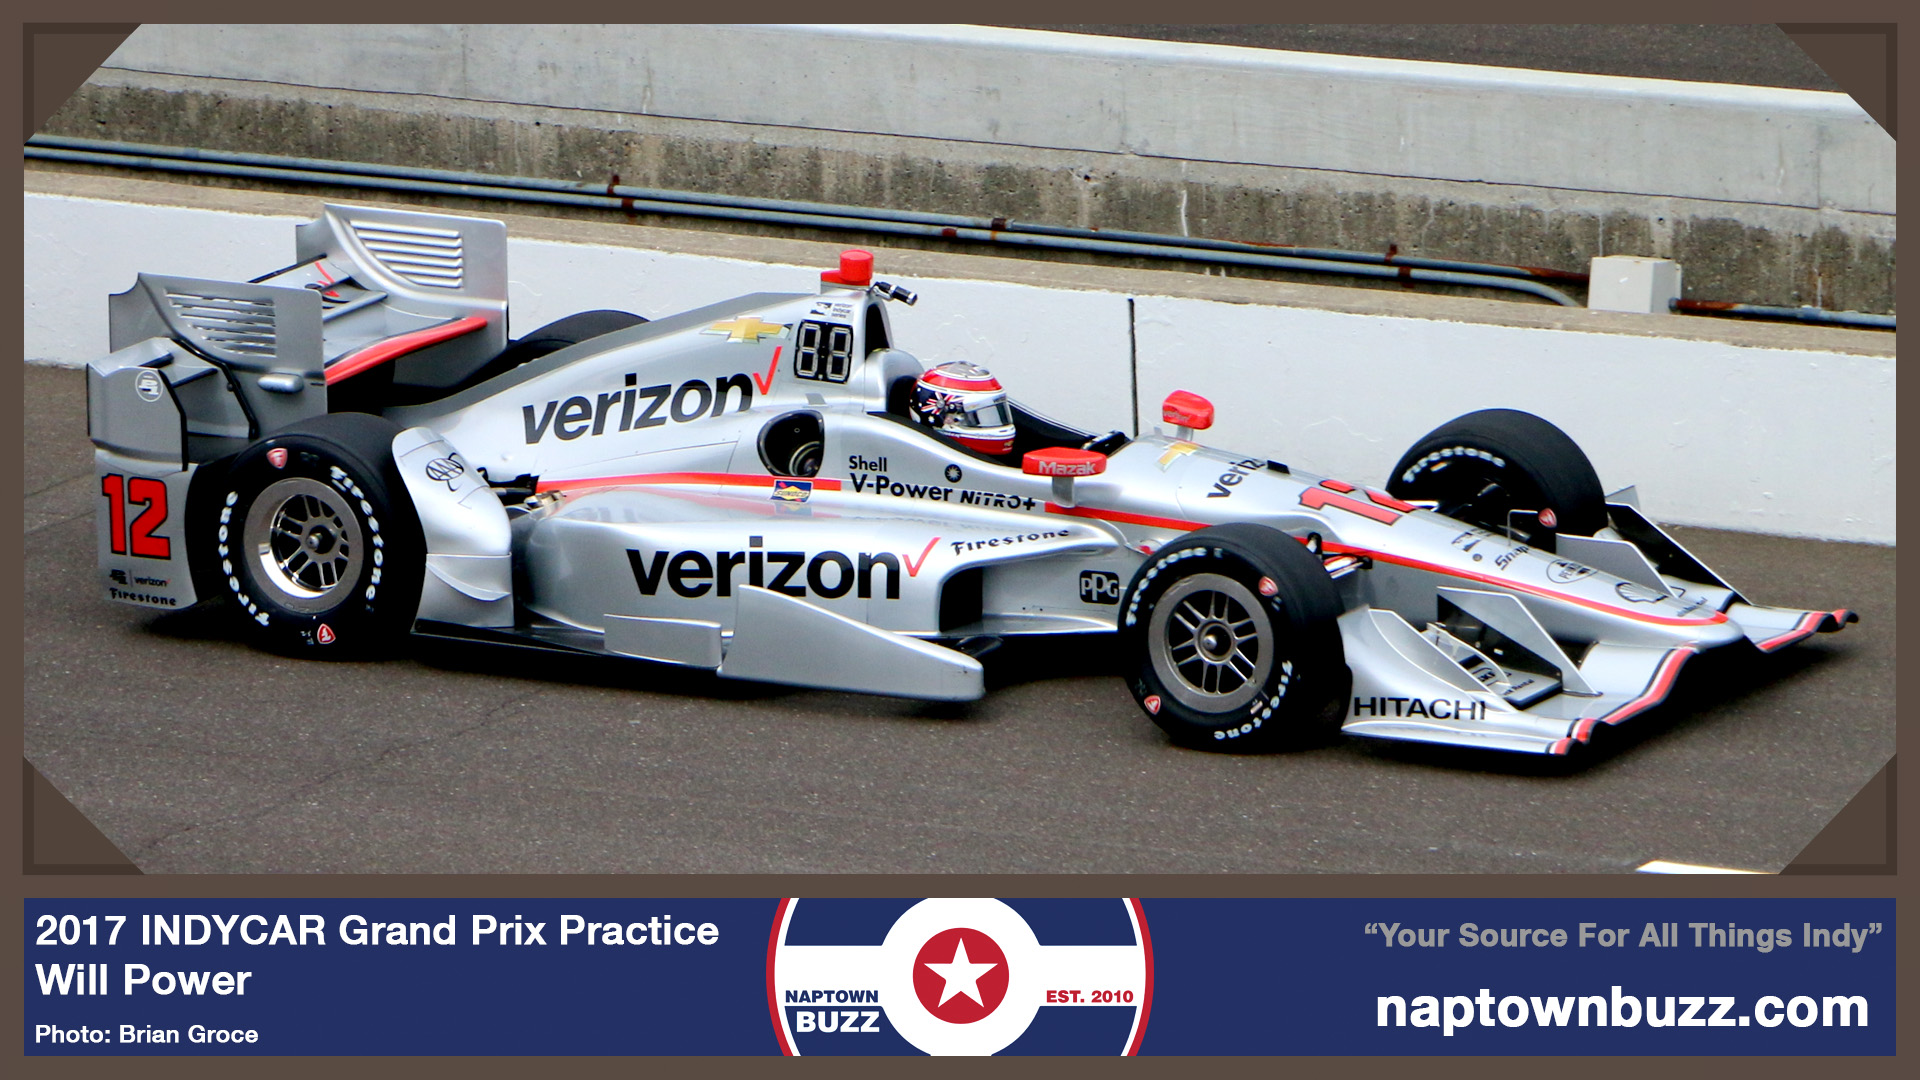 2017 INDYCAR Grand Prix RACE DAY Schedule for Saturday, May 13th ...